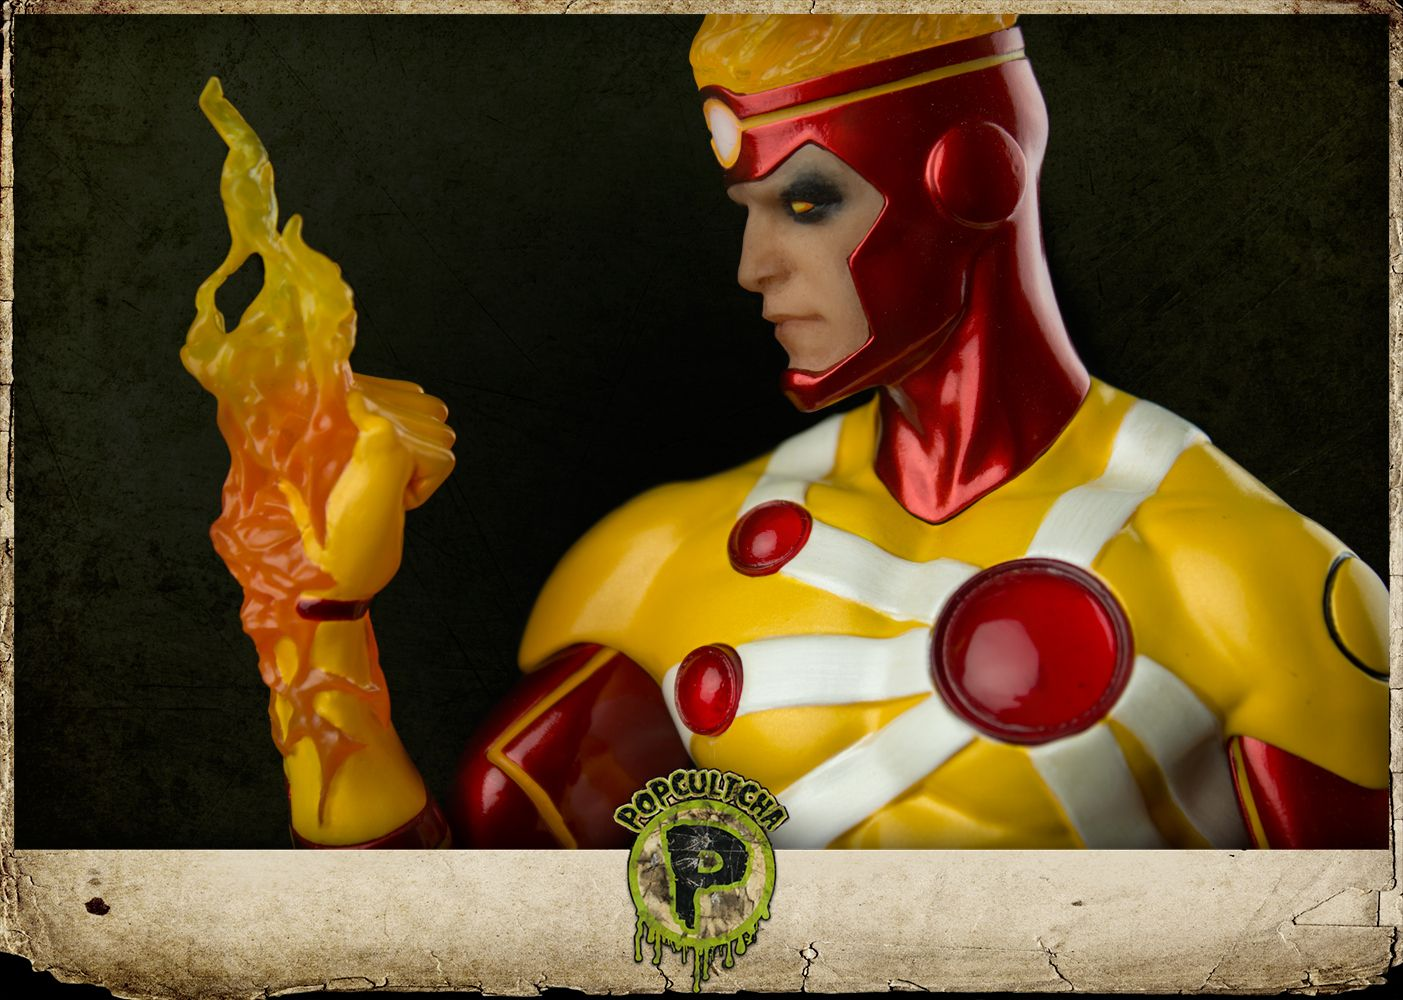 """DC Comics - DC Icons - Firestorm 12"""" Statue The Nuclear Man flies off the comic book page and materialises in your home with this stunning statue based on his appearance in DC Comics - The New 52. Add Ronnie Raymond to your DC Icons collection today. Brought to you by Popcultcha, Australia's largest and most comprehensive New 52 online store. Clickhereto see the full range of our merchandise."""